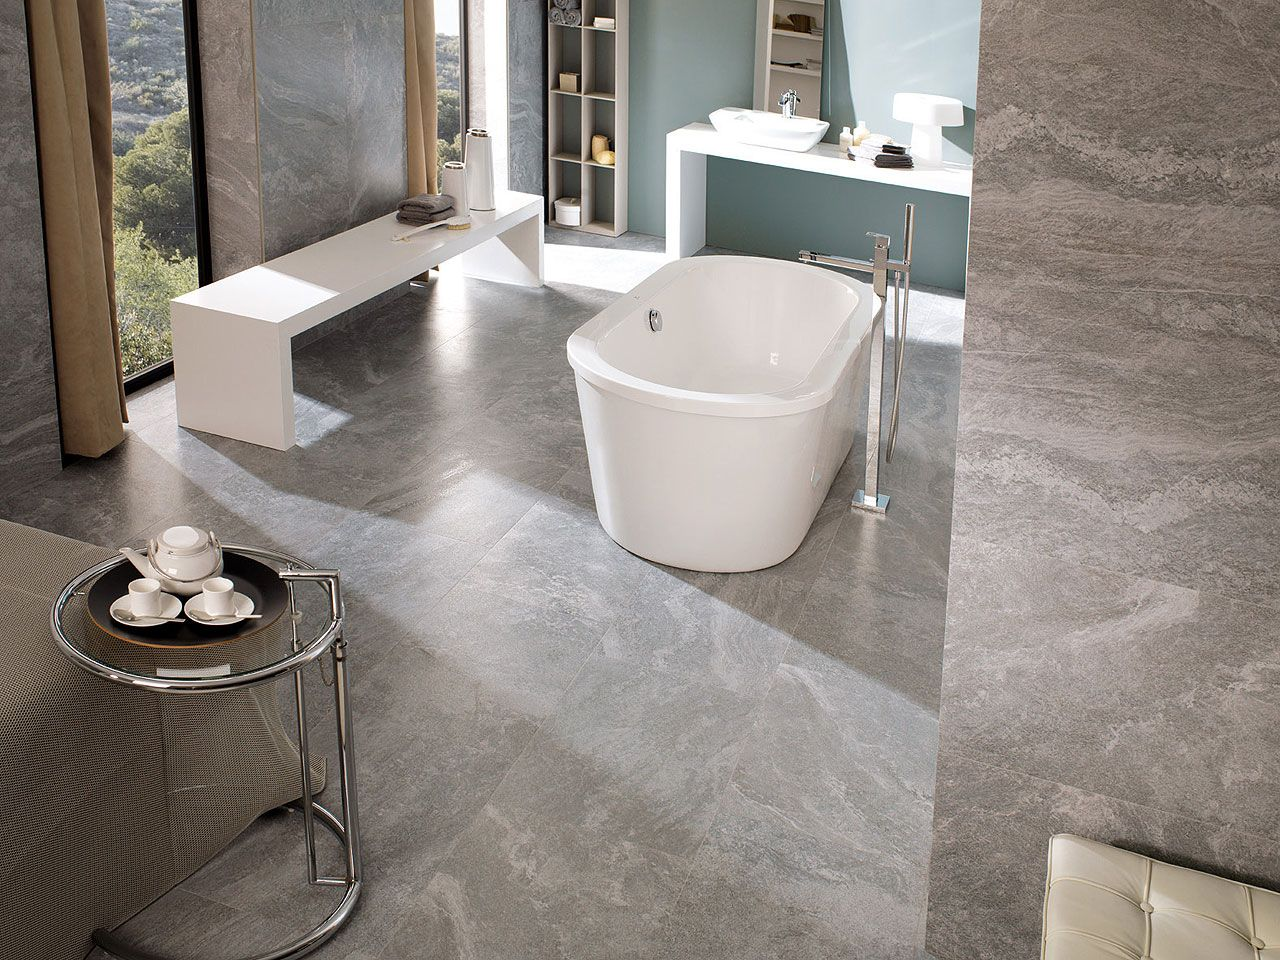 Stylish Bathroom With Porcelanosa S Tiles Floor Tiles Ston Ker